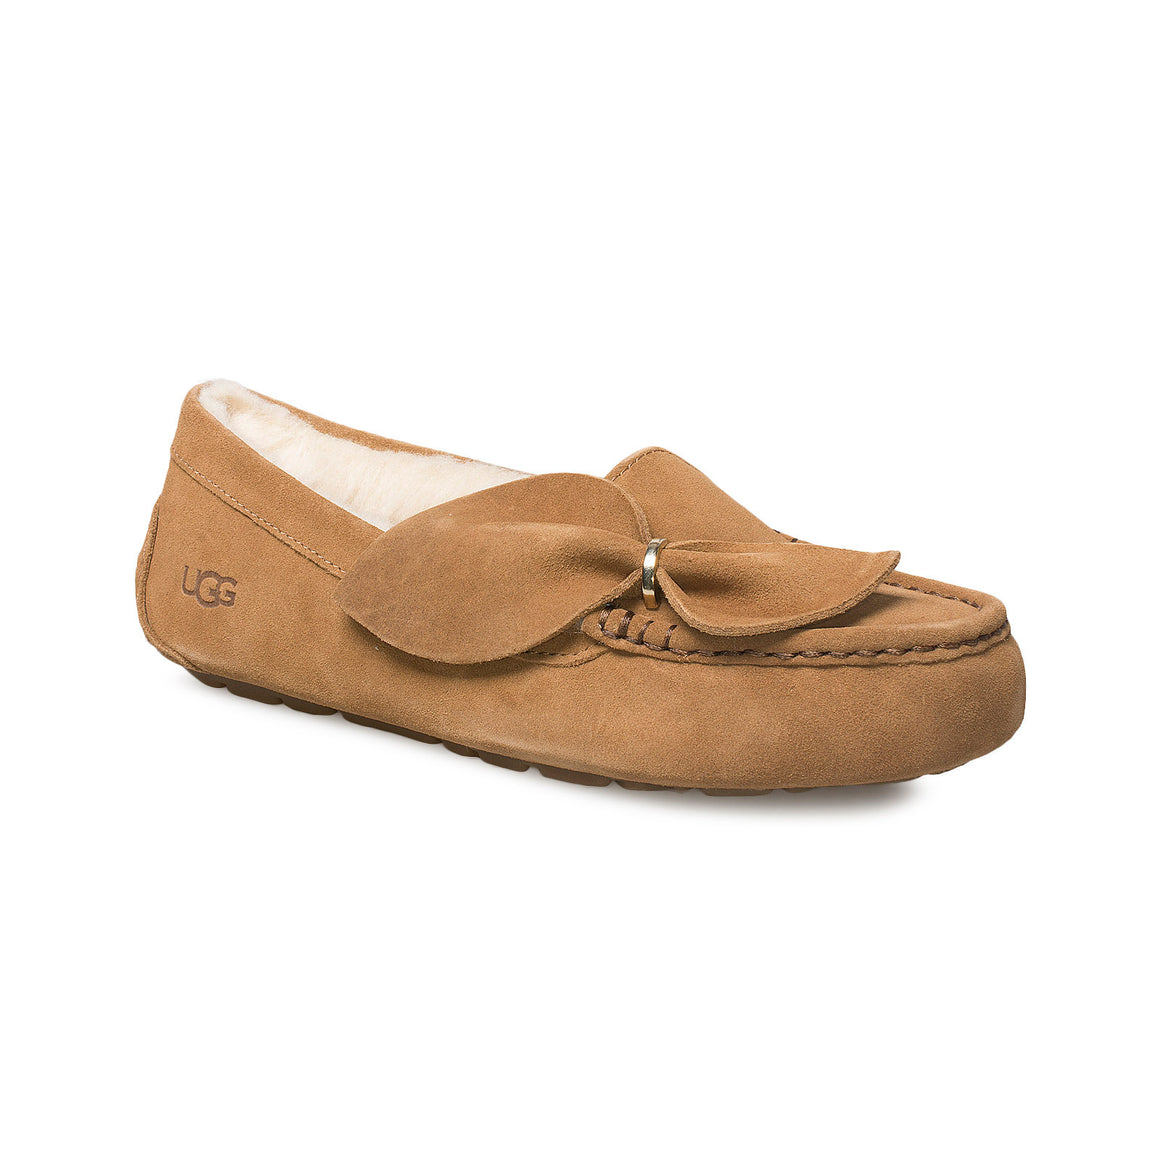 UGG Ansley Twist Chestnut Slippers - Women's